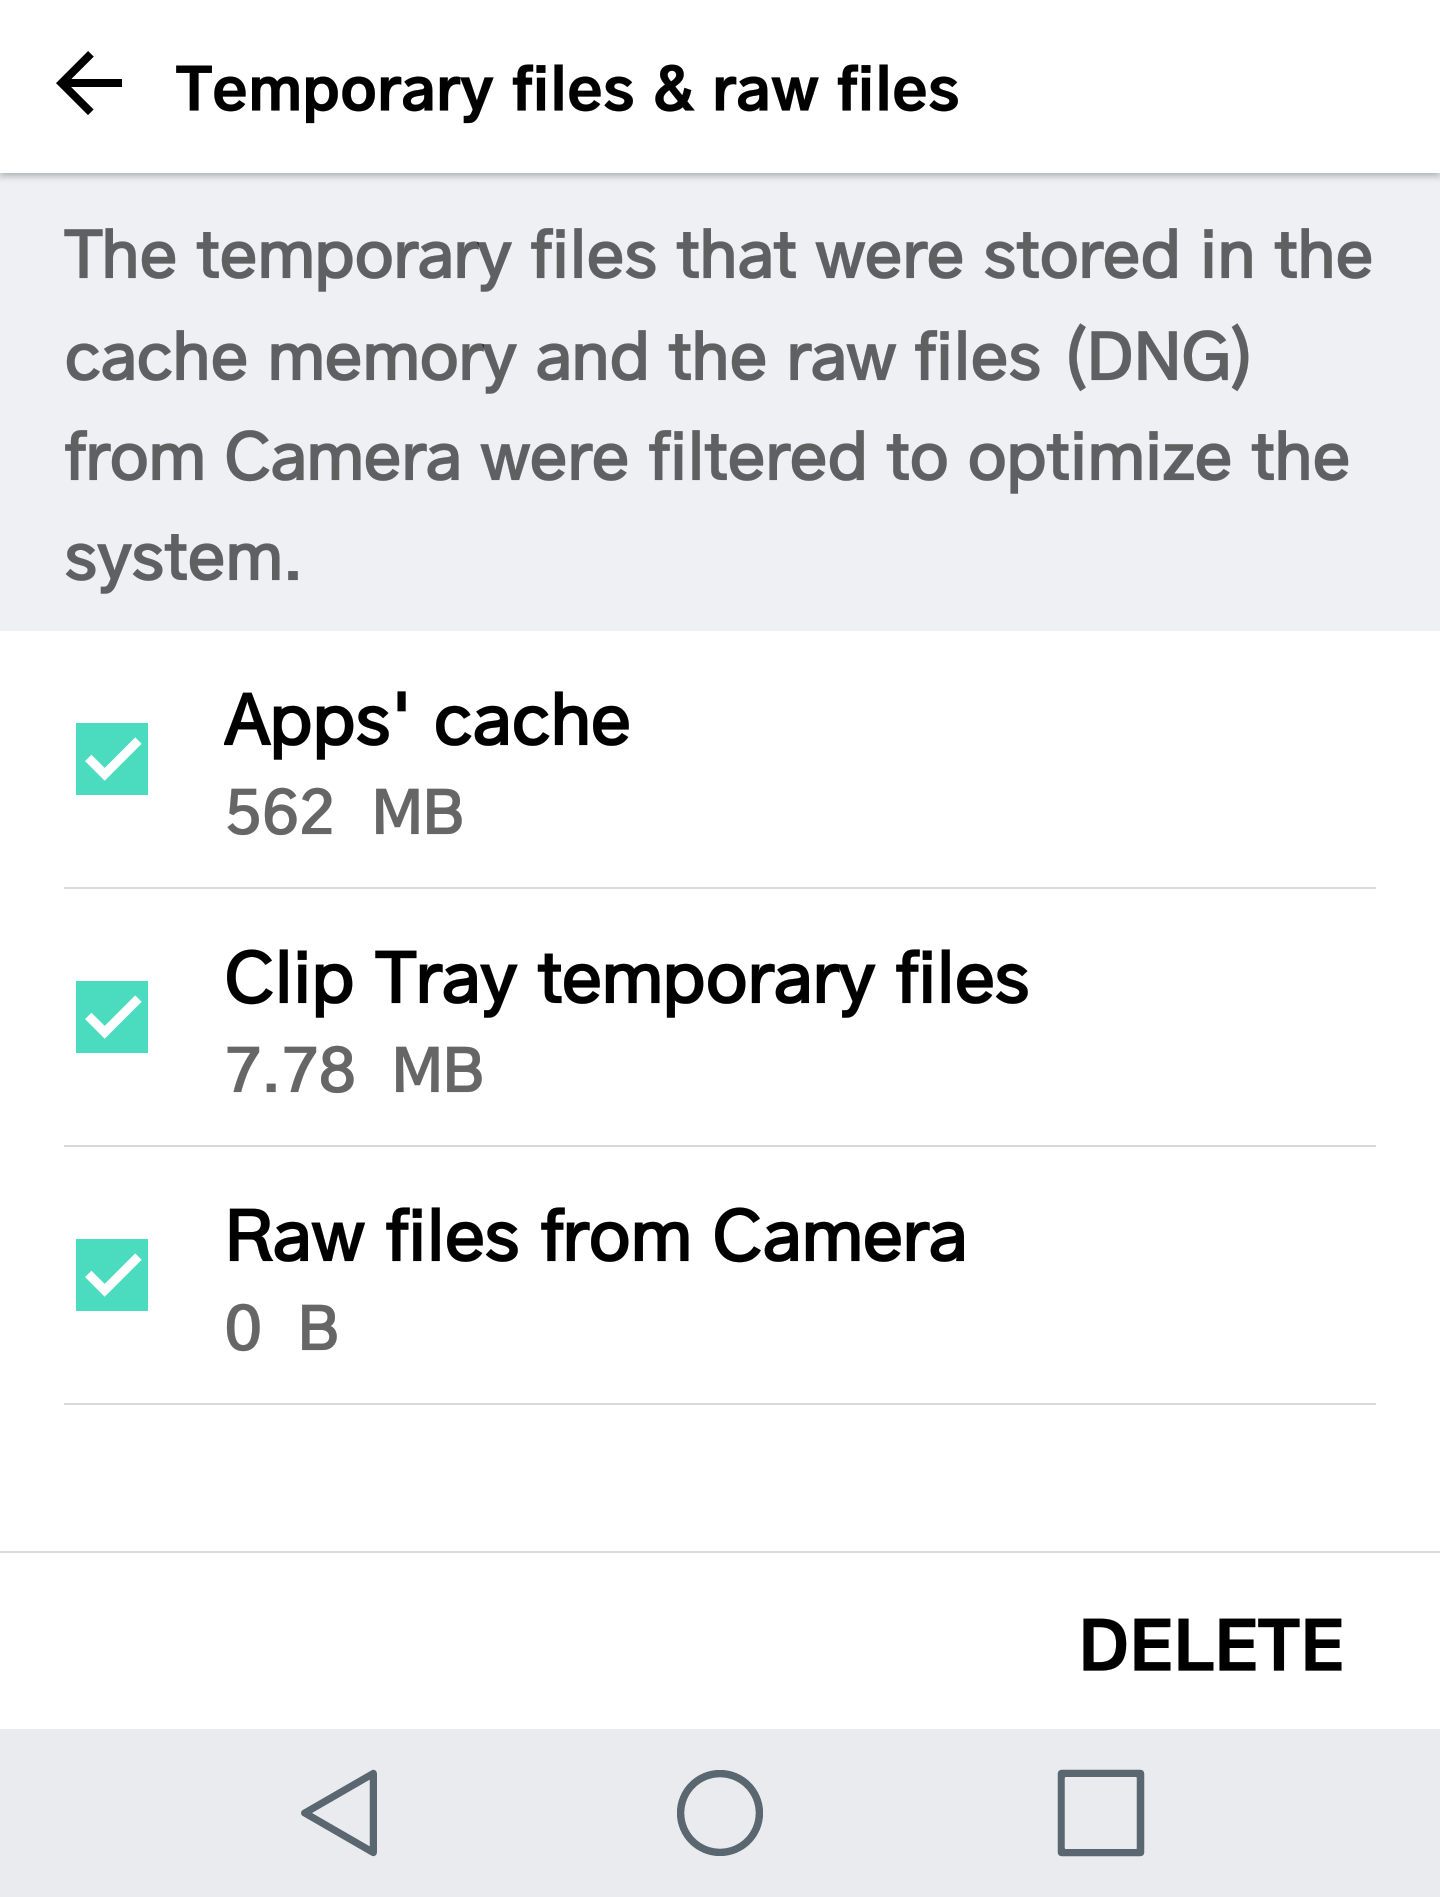 android smart cleaning - temporary files